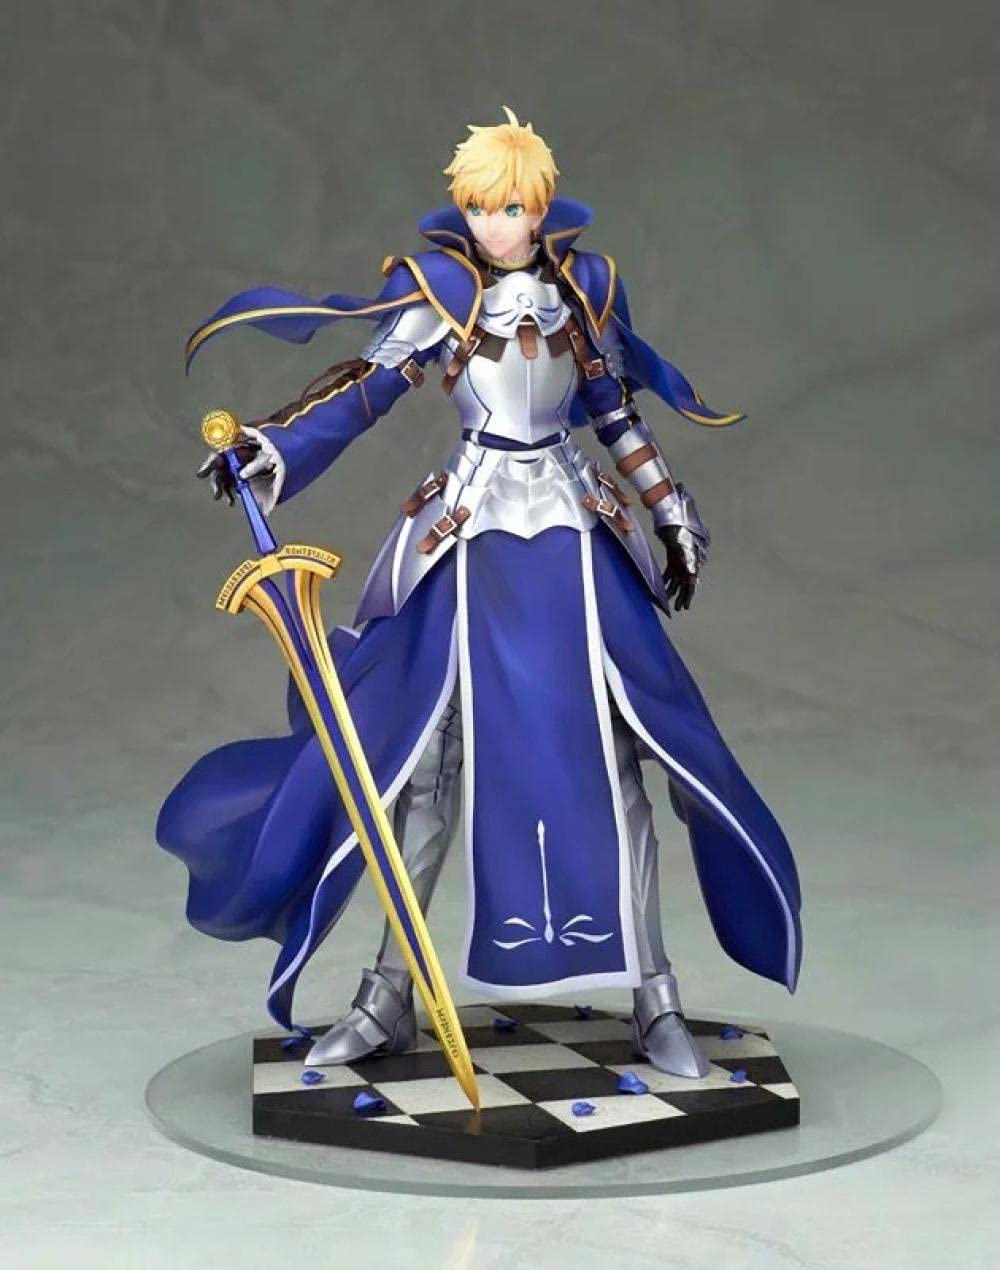 DFYHVN Collection Action Figures Anime Figure 24Cm Ani Over item handling Award Character